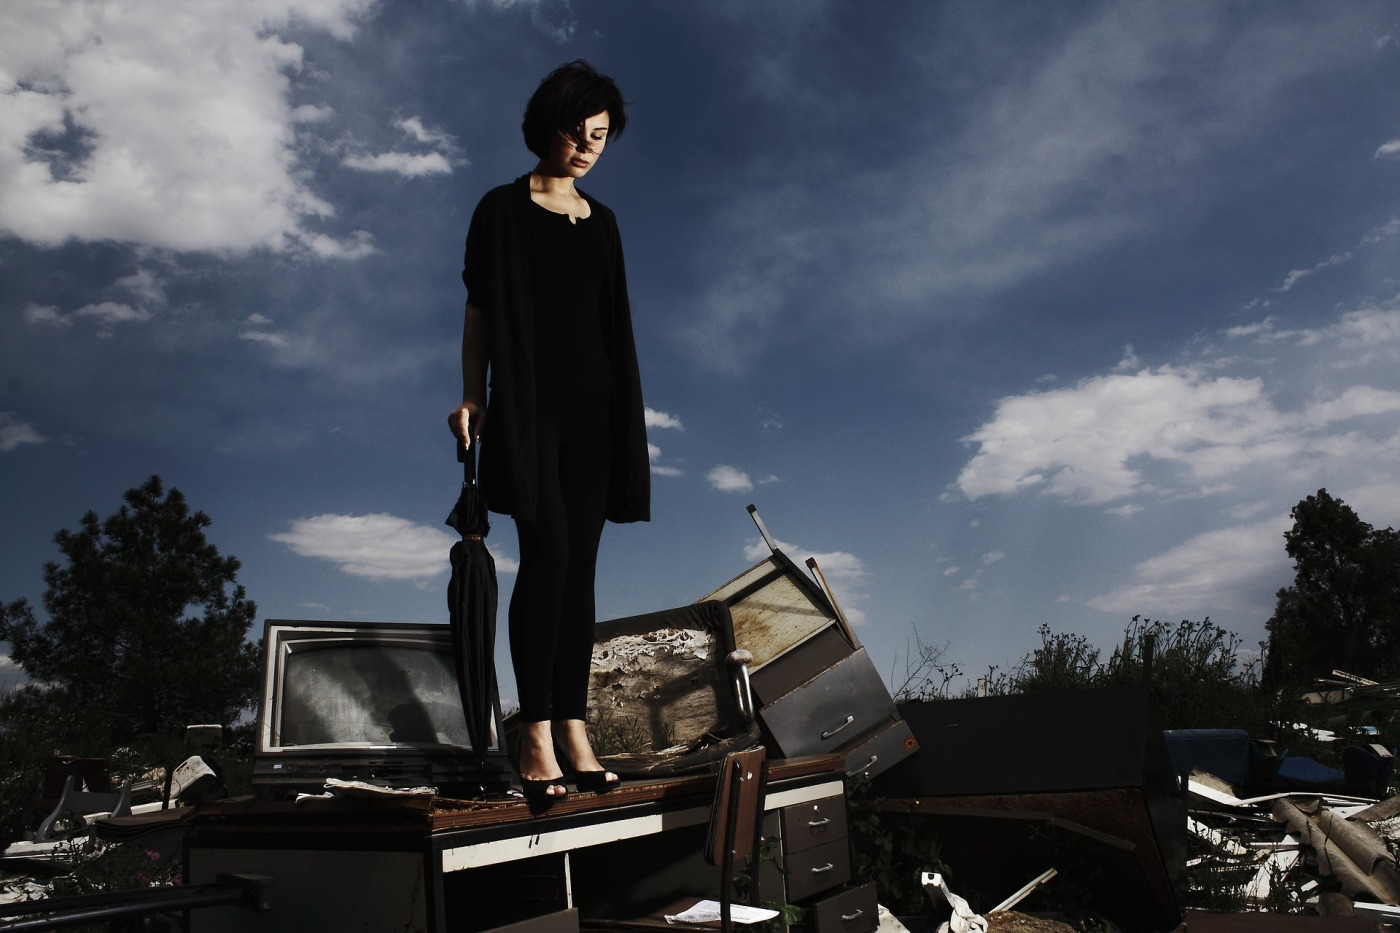 woman on top of discarded junk, holding and umbrella